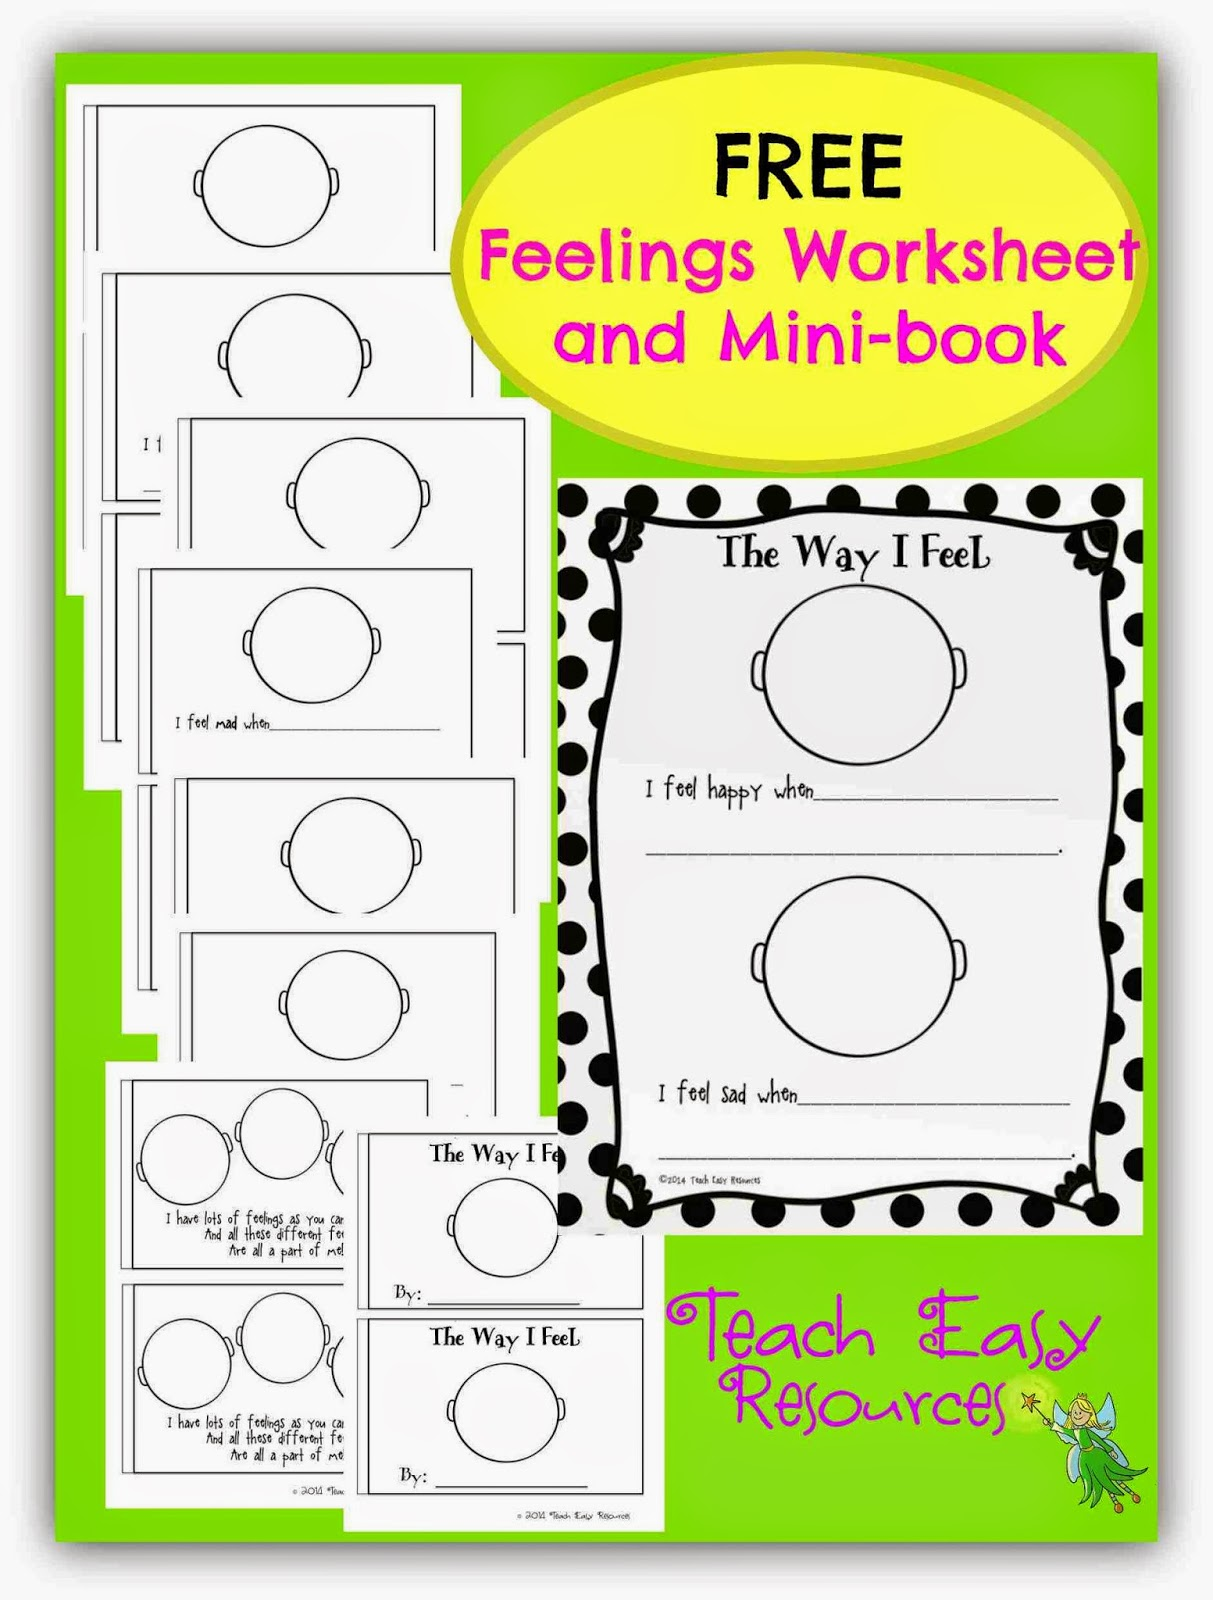 Teach Easy Resources Picture Book About Feelings And A